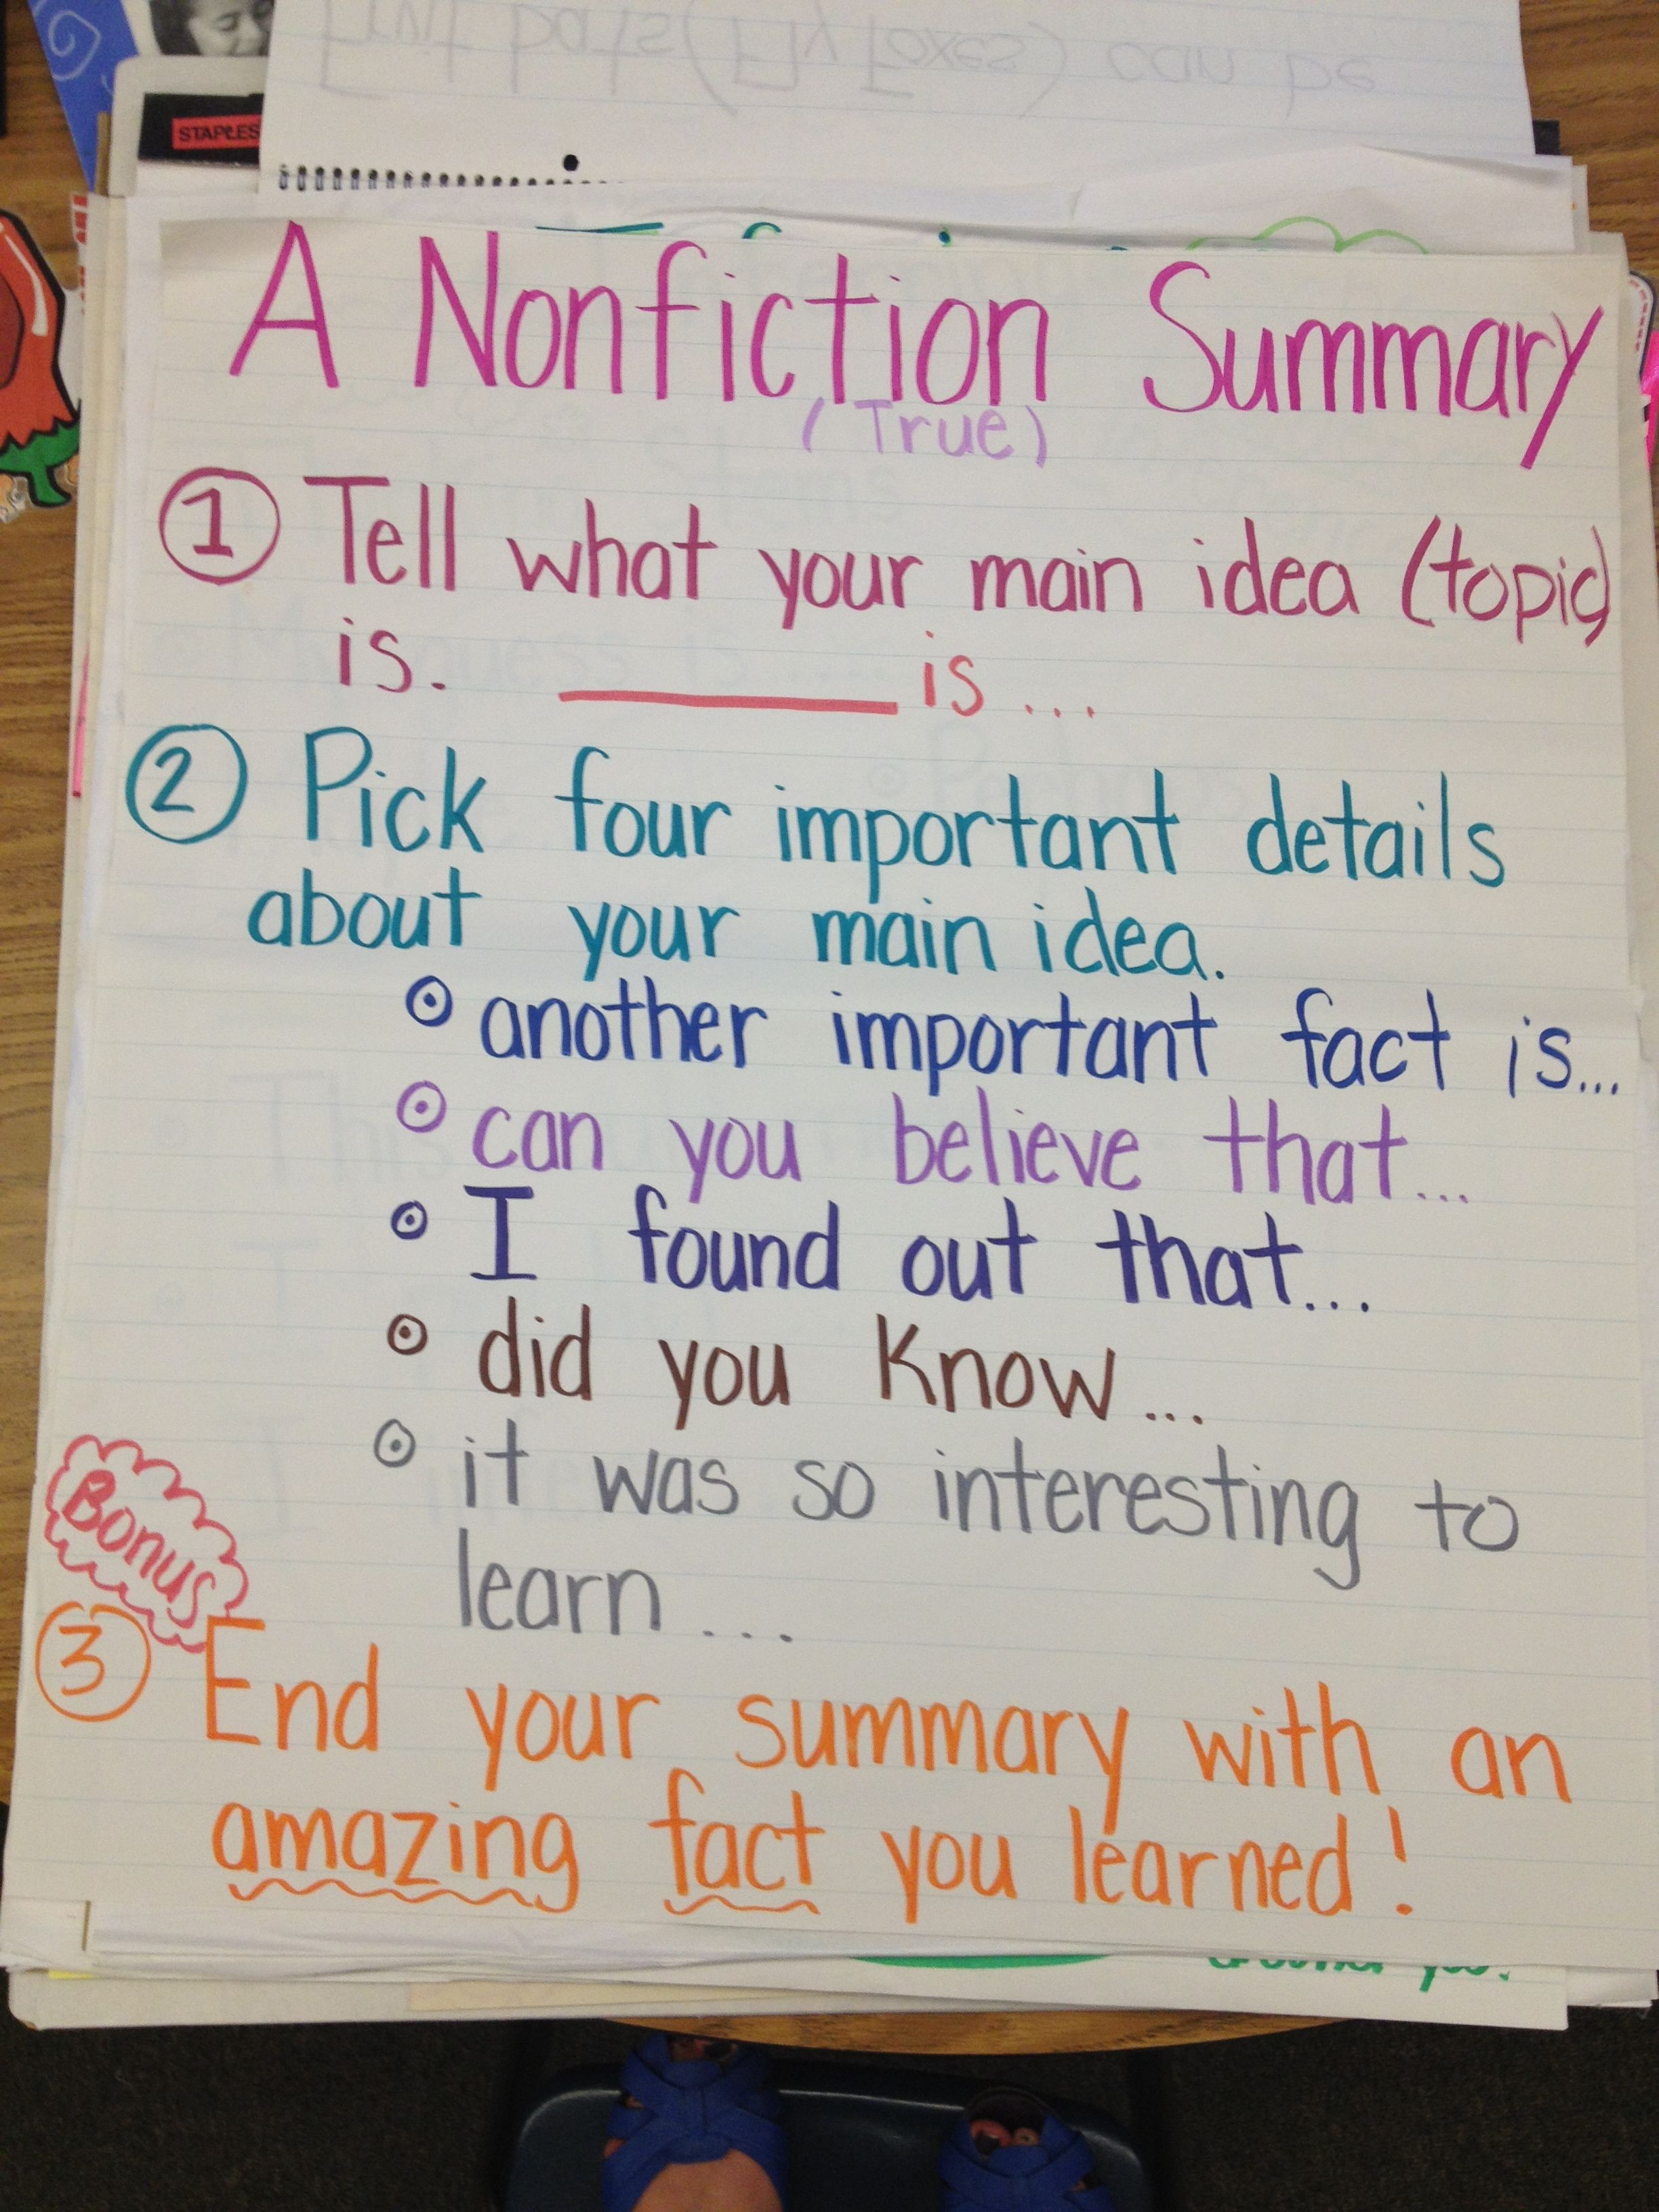 Nonfiction Summary Summaries Are Much More Difficult With Nonfiction